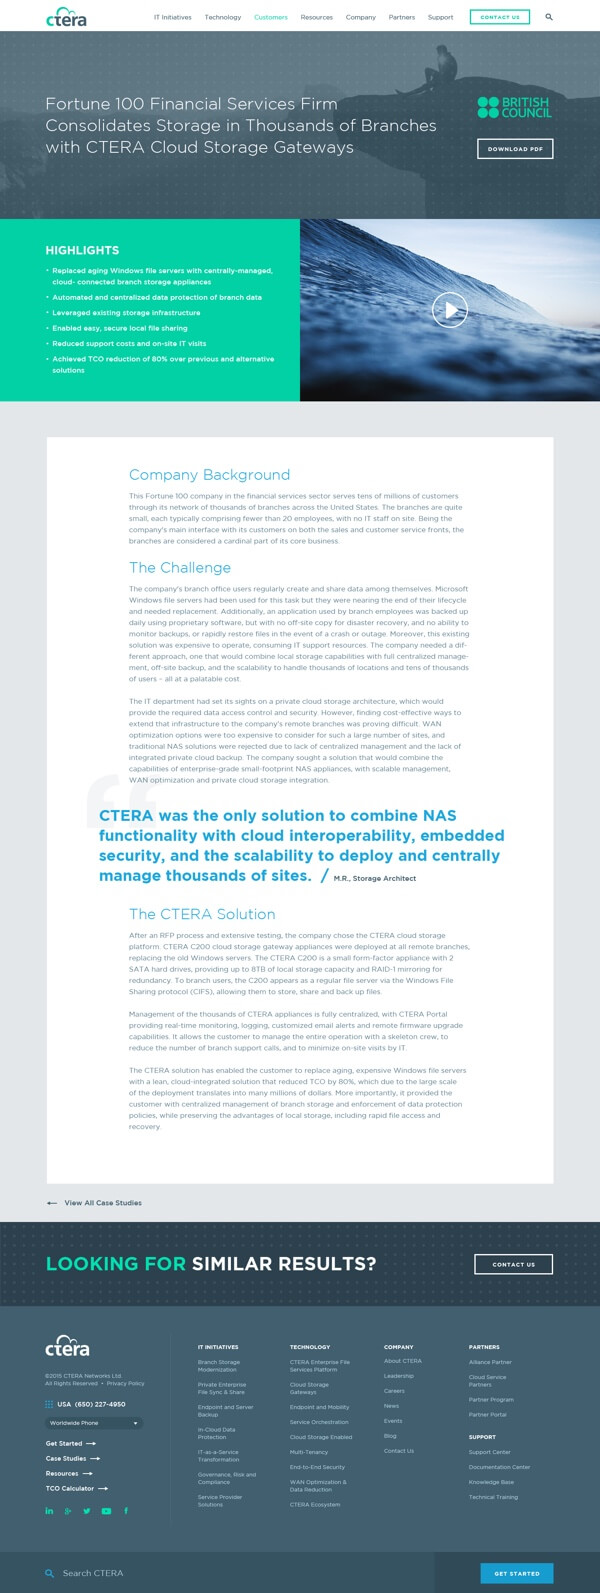 Screenshot of CTERA website - Blog post page